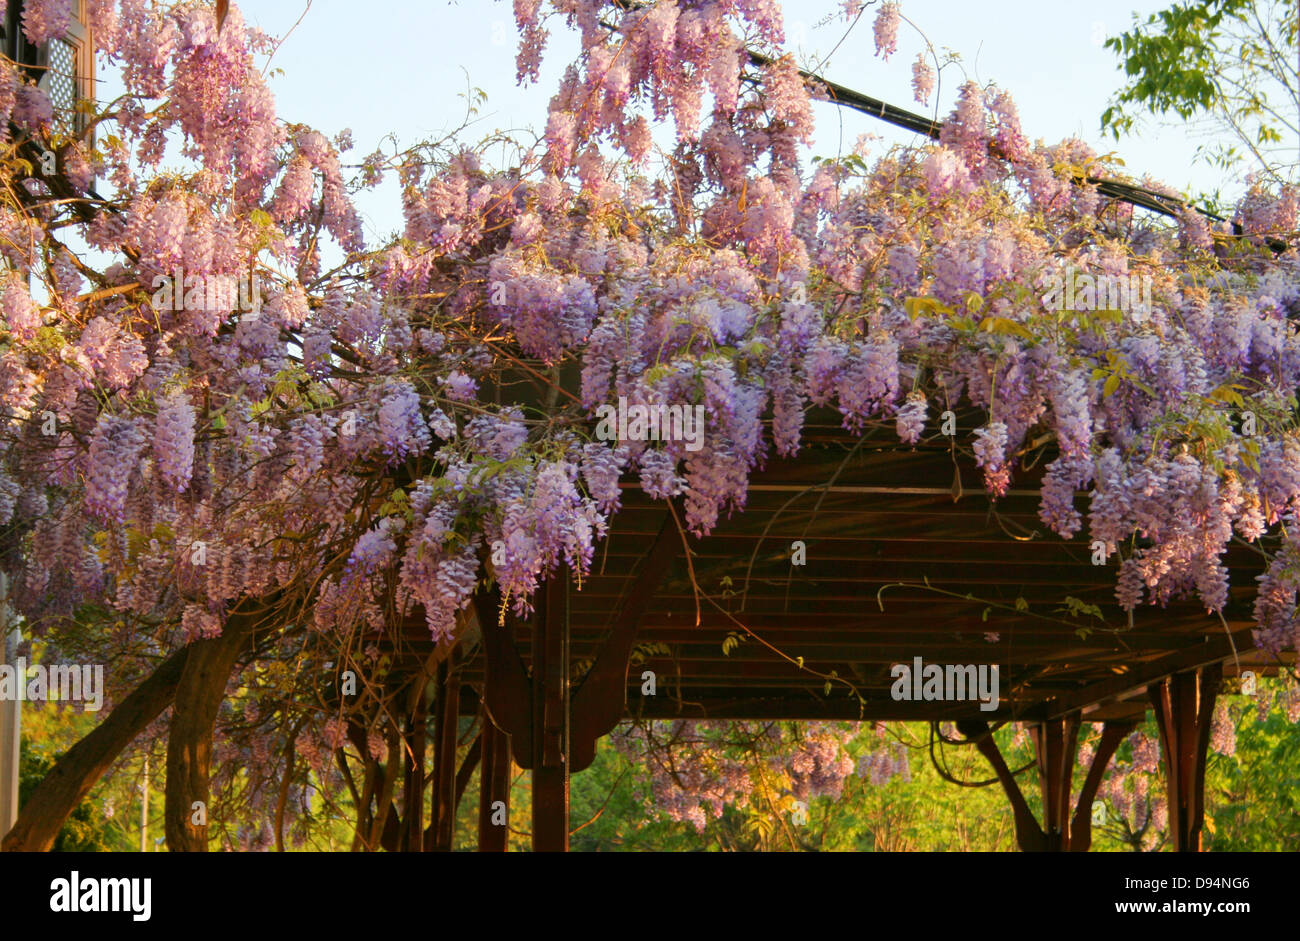 Lilac Flowers on bower in spring garden - Stock Image